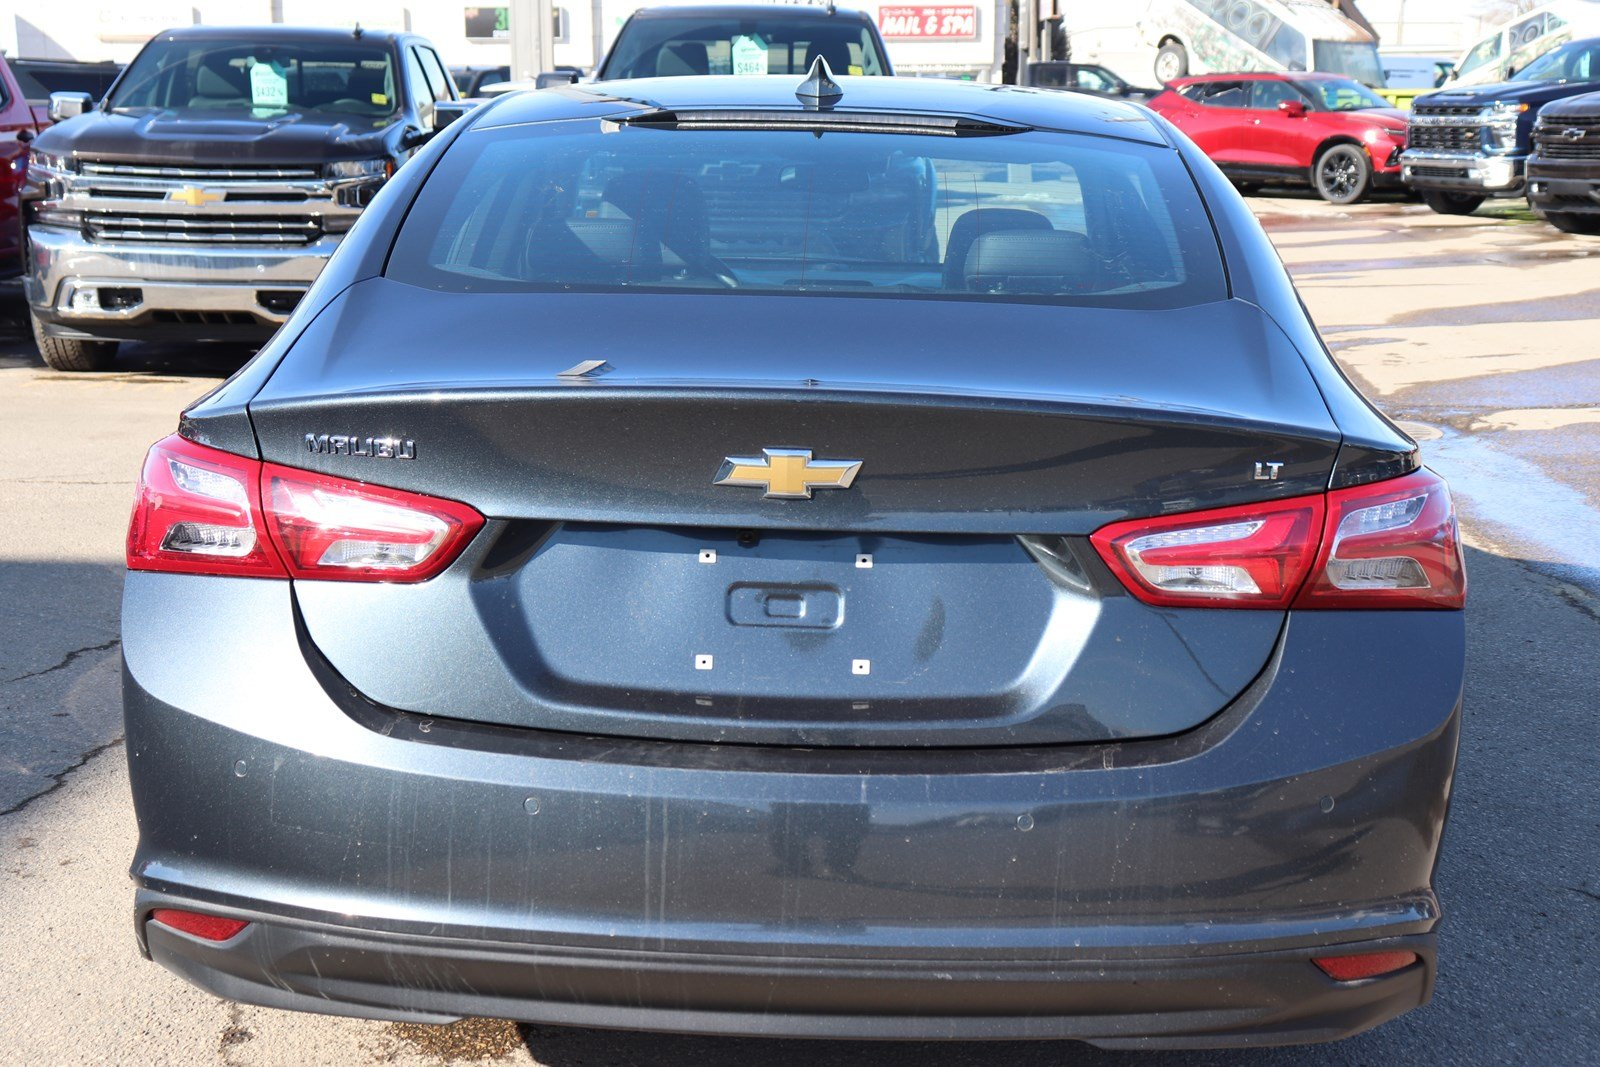 Certified Pre-Owned 2019 Chevrolet Malibu LT- Heated Leather, Sunroof, Rem Start, Htd Steering Wheel